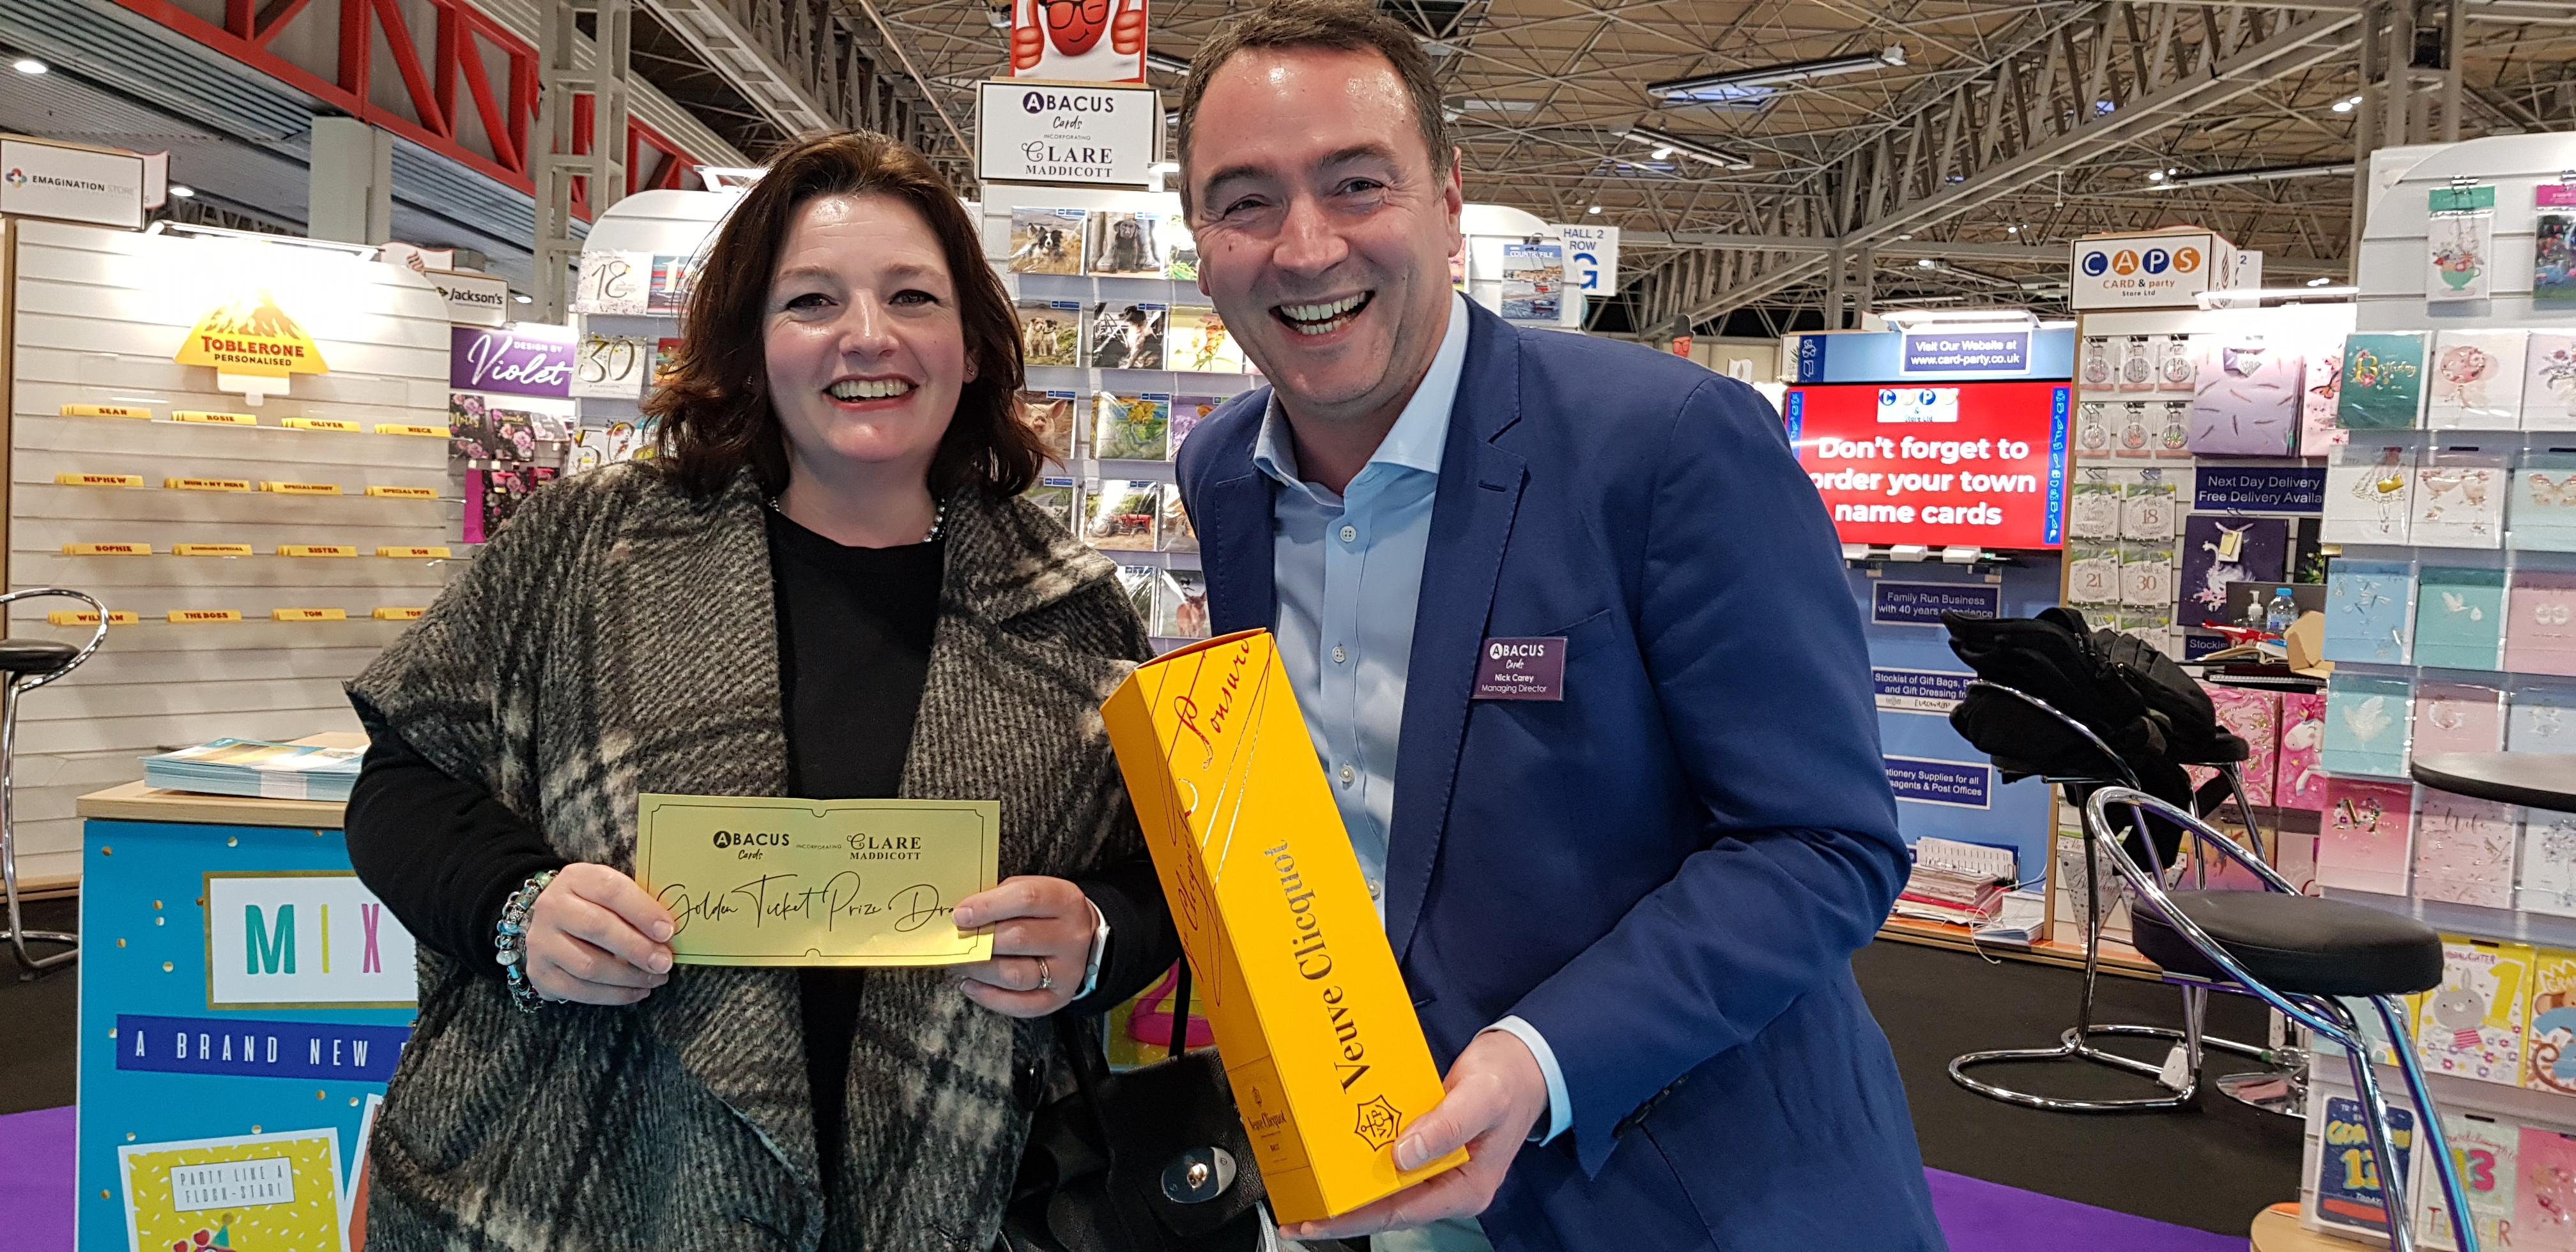 Above: Sophie Timmermans of Timmermans Garden Centre was the Wednesday winner of the Abacus Golden Ticket prize draw, which saw managing director Nick Carey present her with a bottle of champagne.